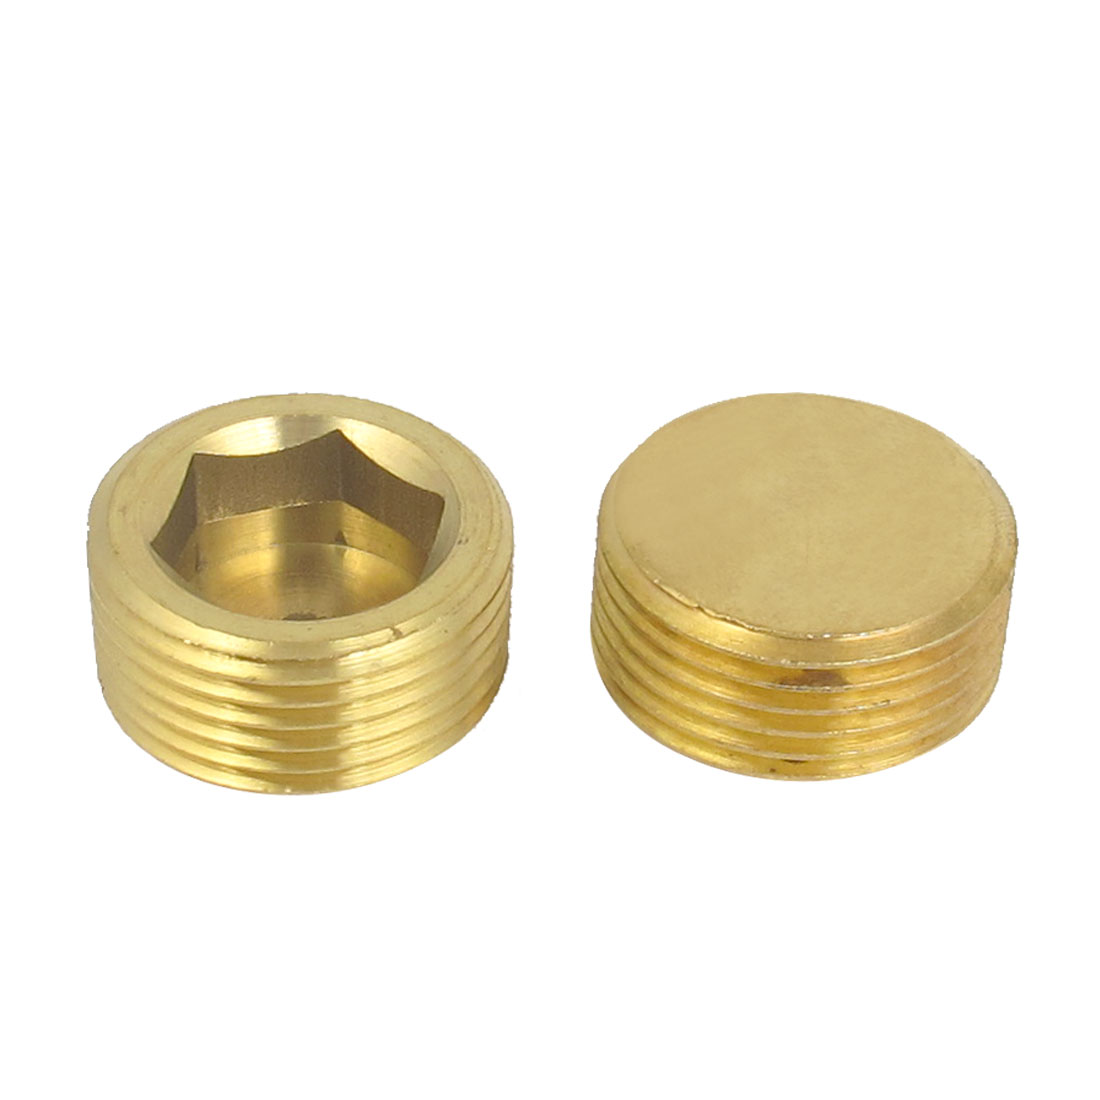 2 Pcs Air Pneumatic 1BSP Male Thread Brass Round Head Pipe Fastener